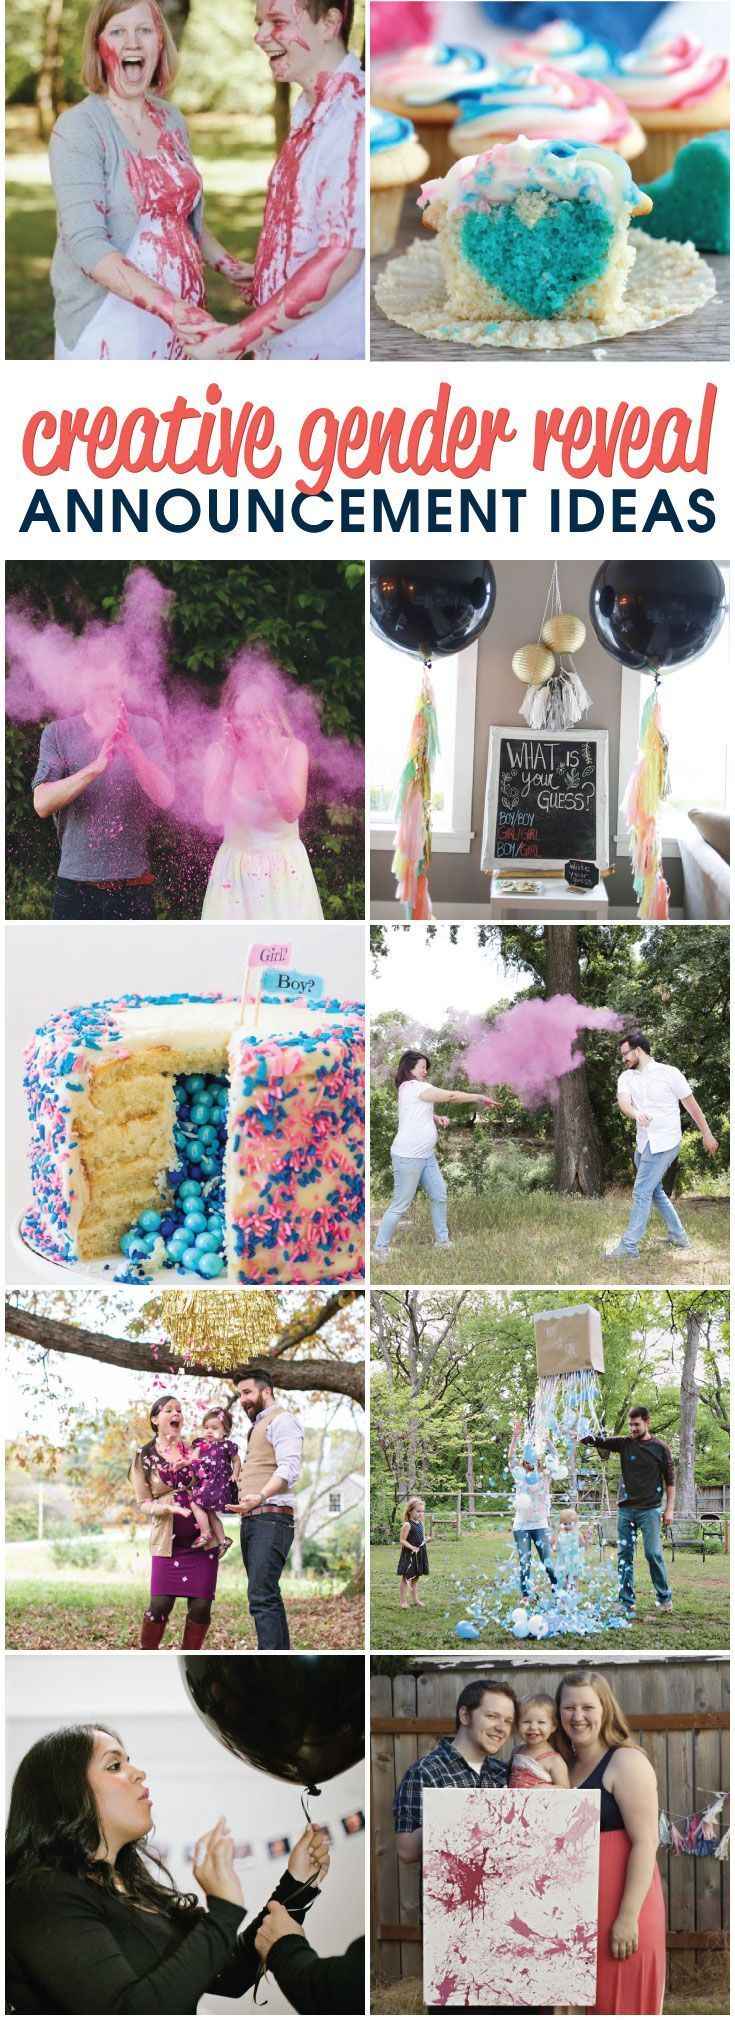 Creative Fun For All Ages With Easy Diy Wall Art Projects: 1000+ Images About Gender Reveal Party Ideas On Pinterest